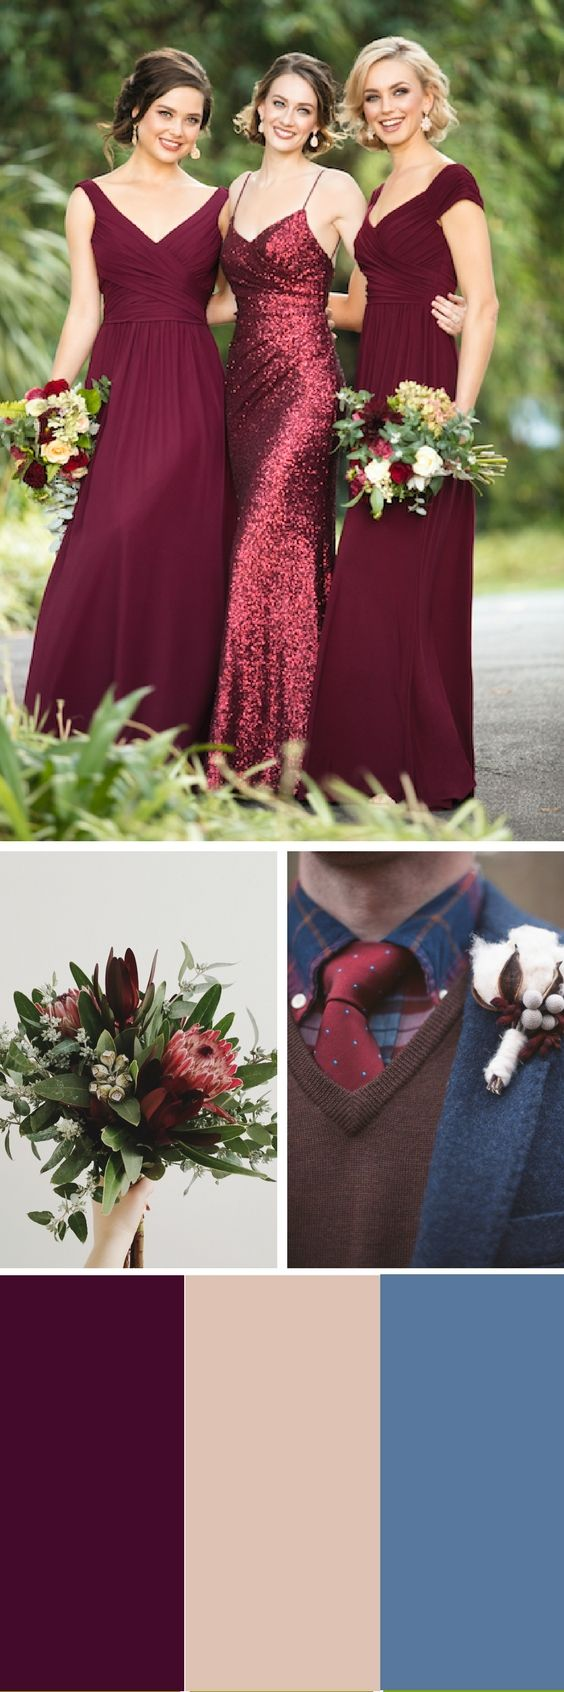 Chic Burgundy Bridesmaids Dresses for a Mixed Berry Mix-and-Match Bridal Party You'll Love